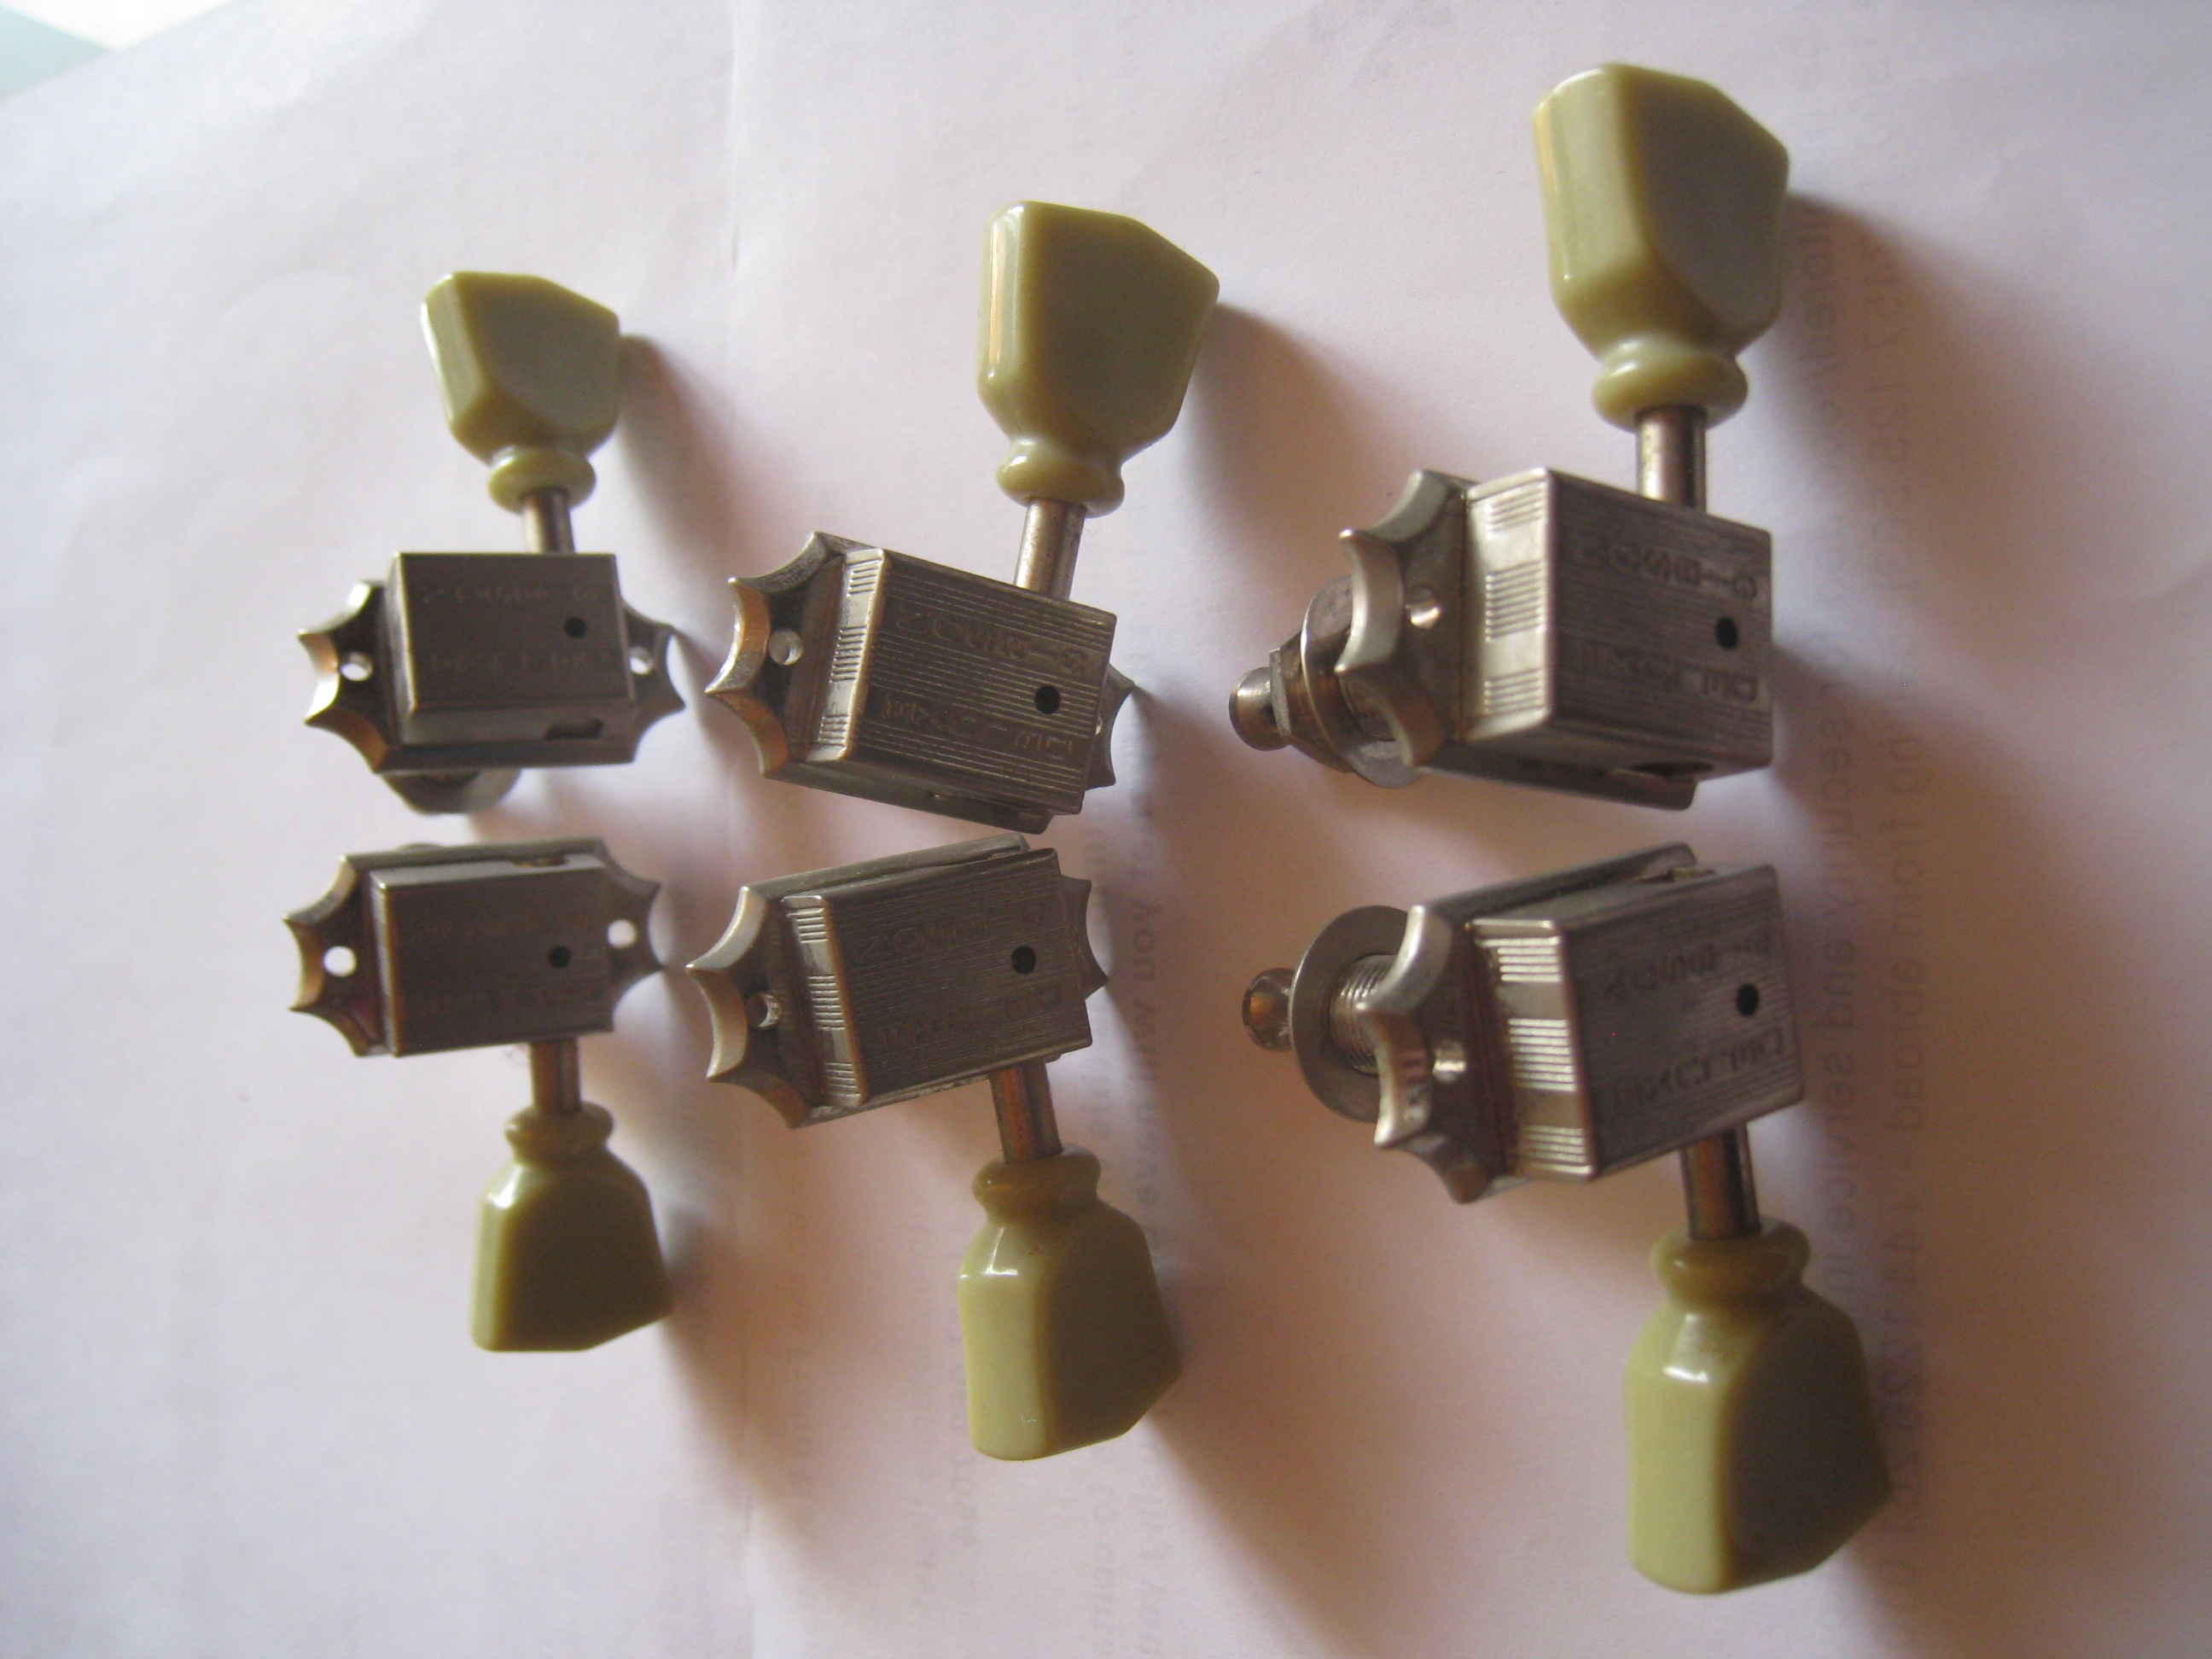 gibson vintage nickel machine heads with pearloid buttons